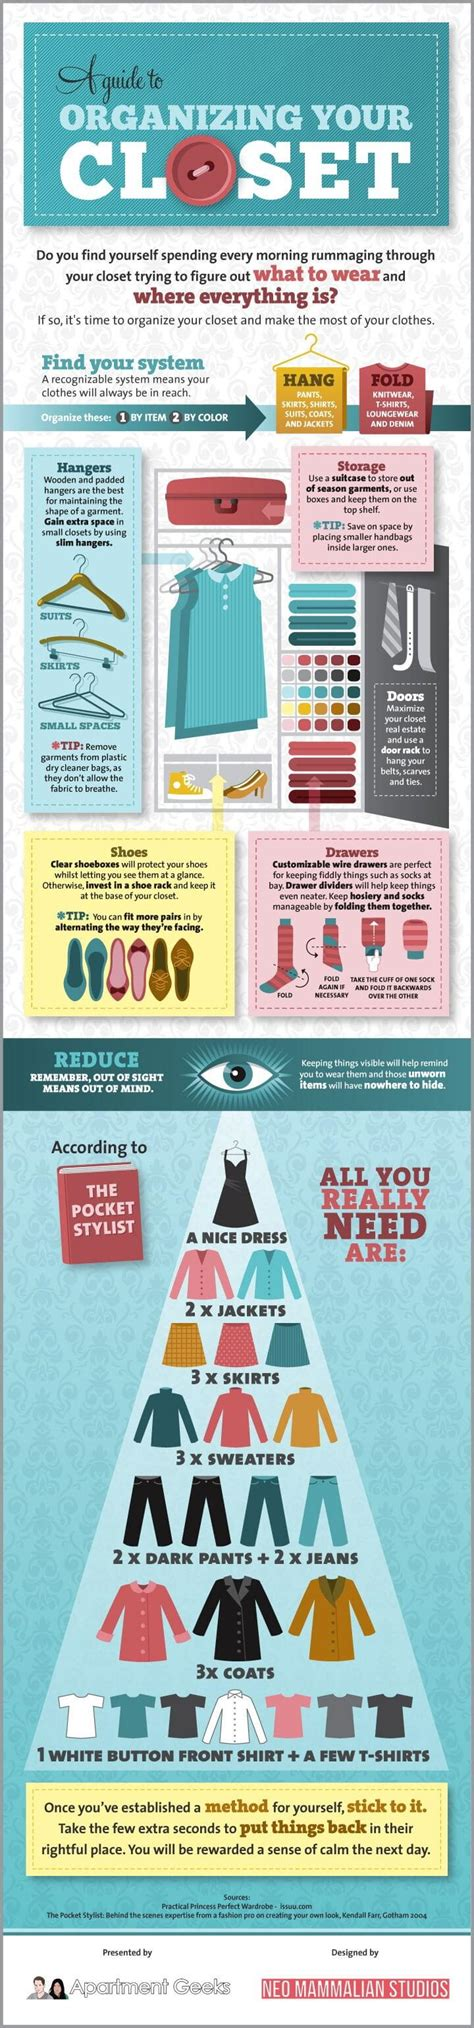 Organizing Your Closet  Daily Infographic